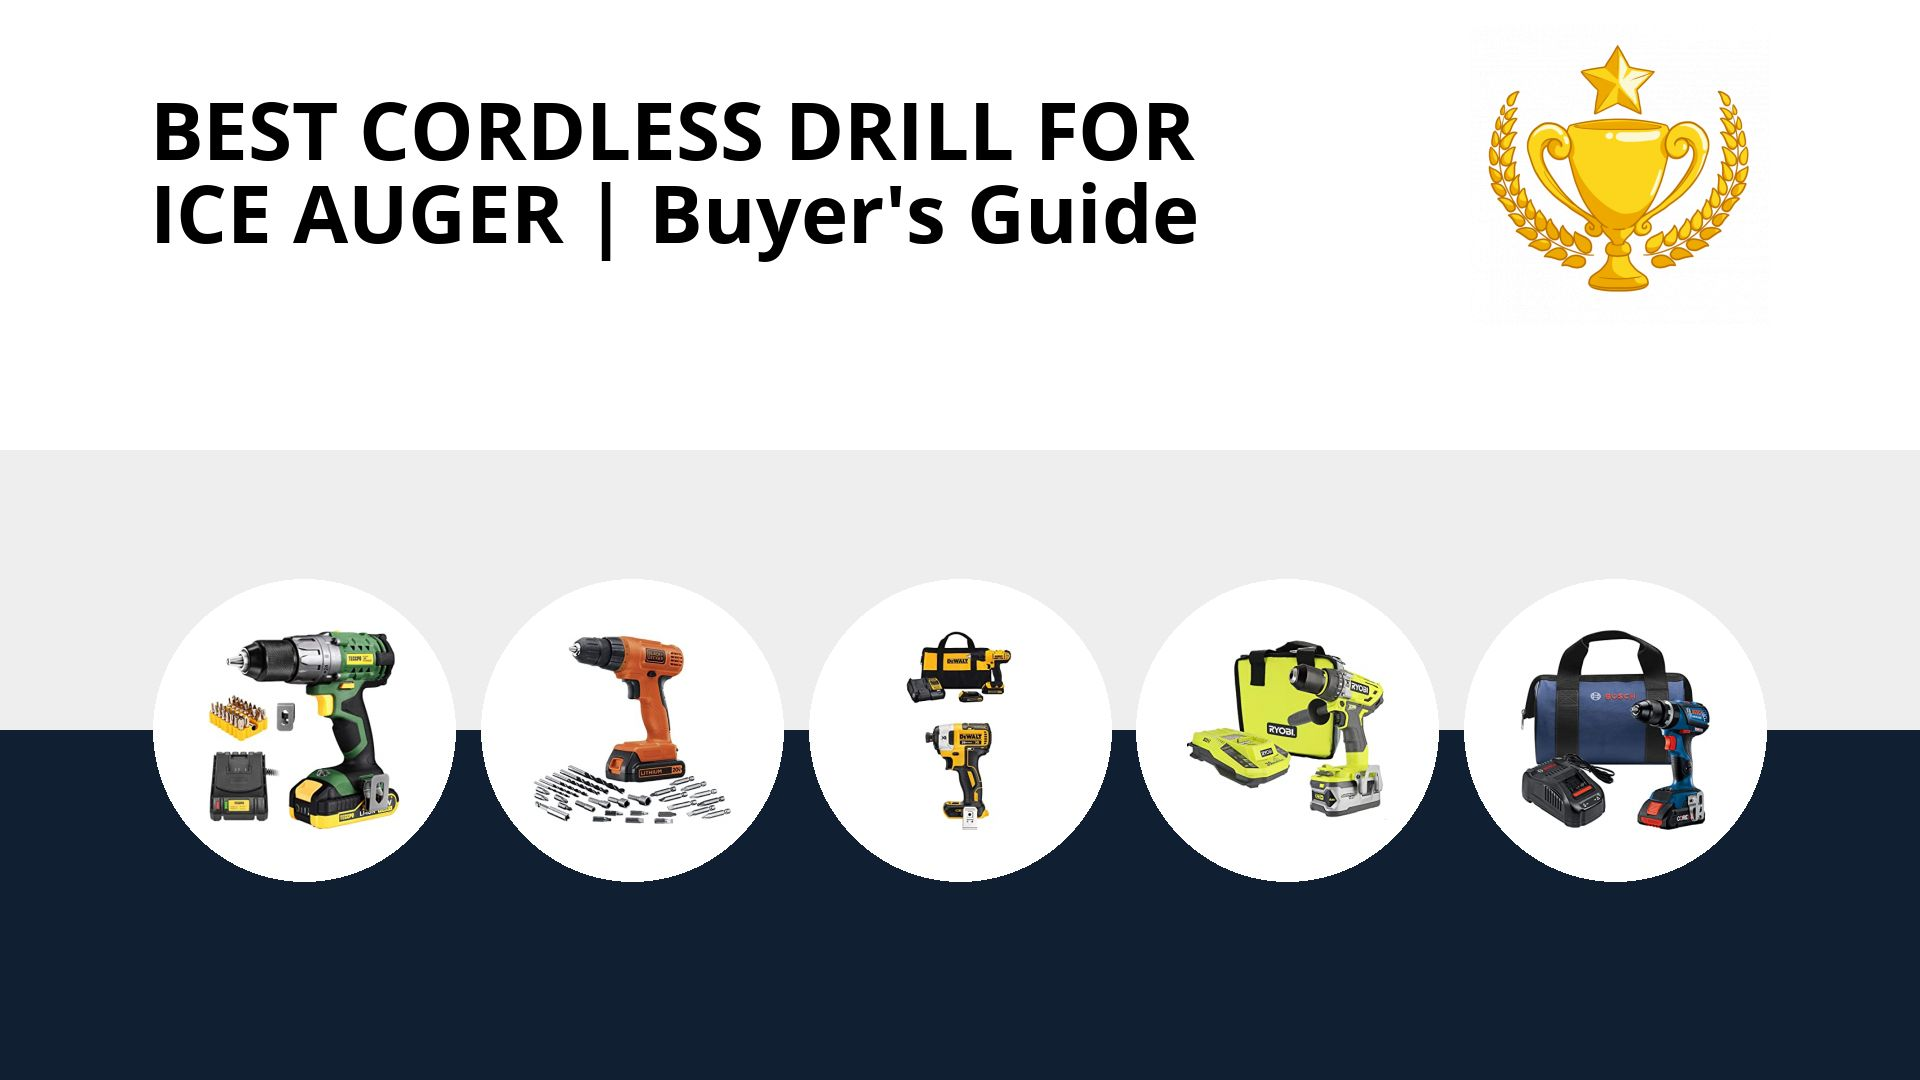 Best Cordless Drill For Ice Auger: image